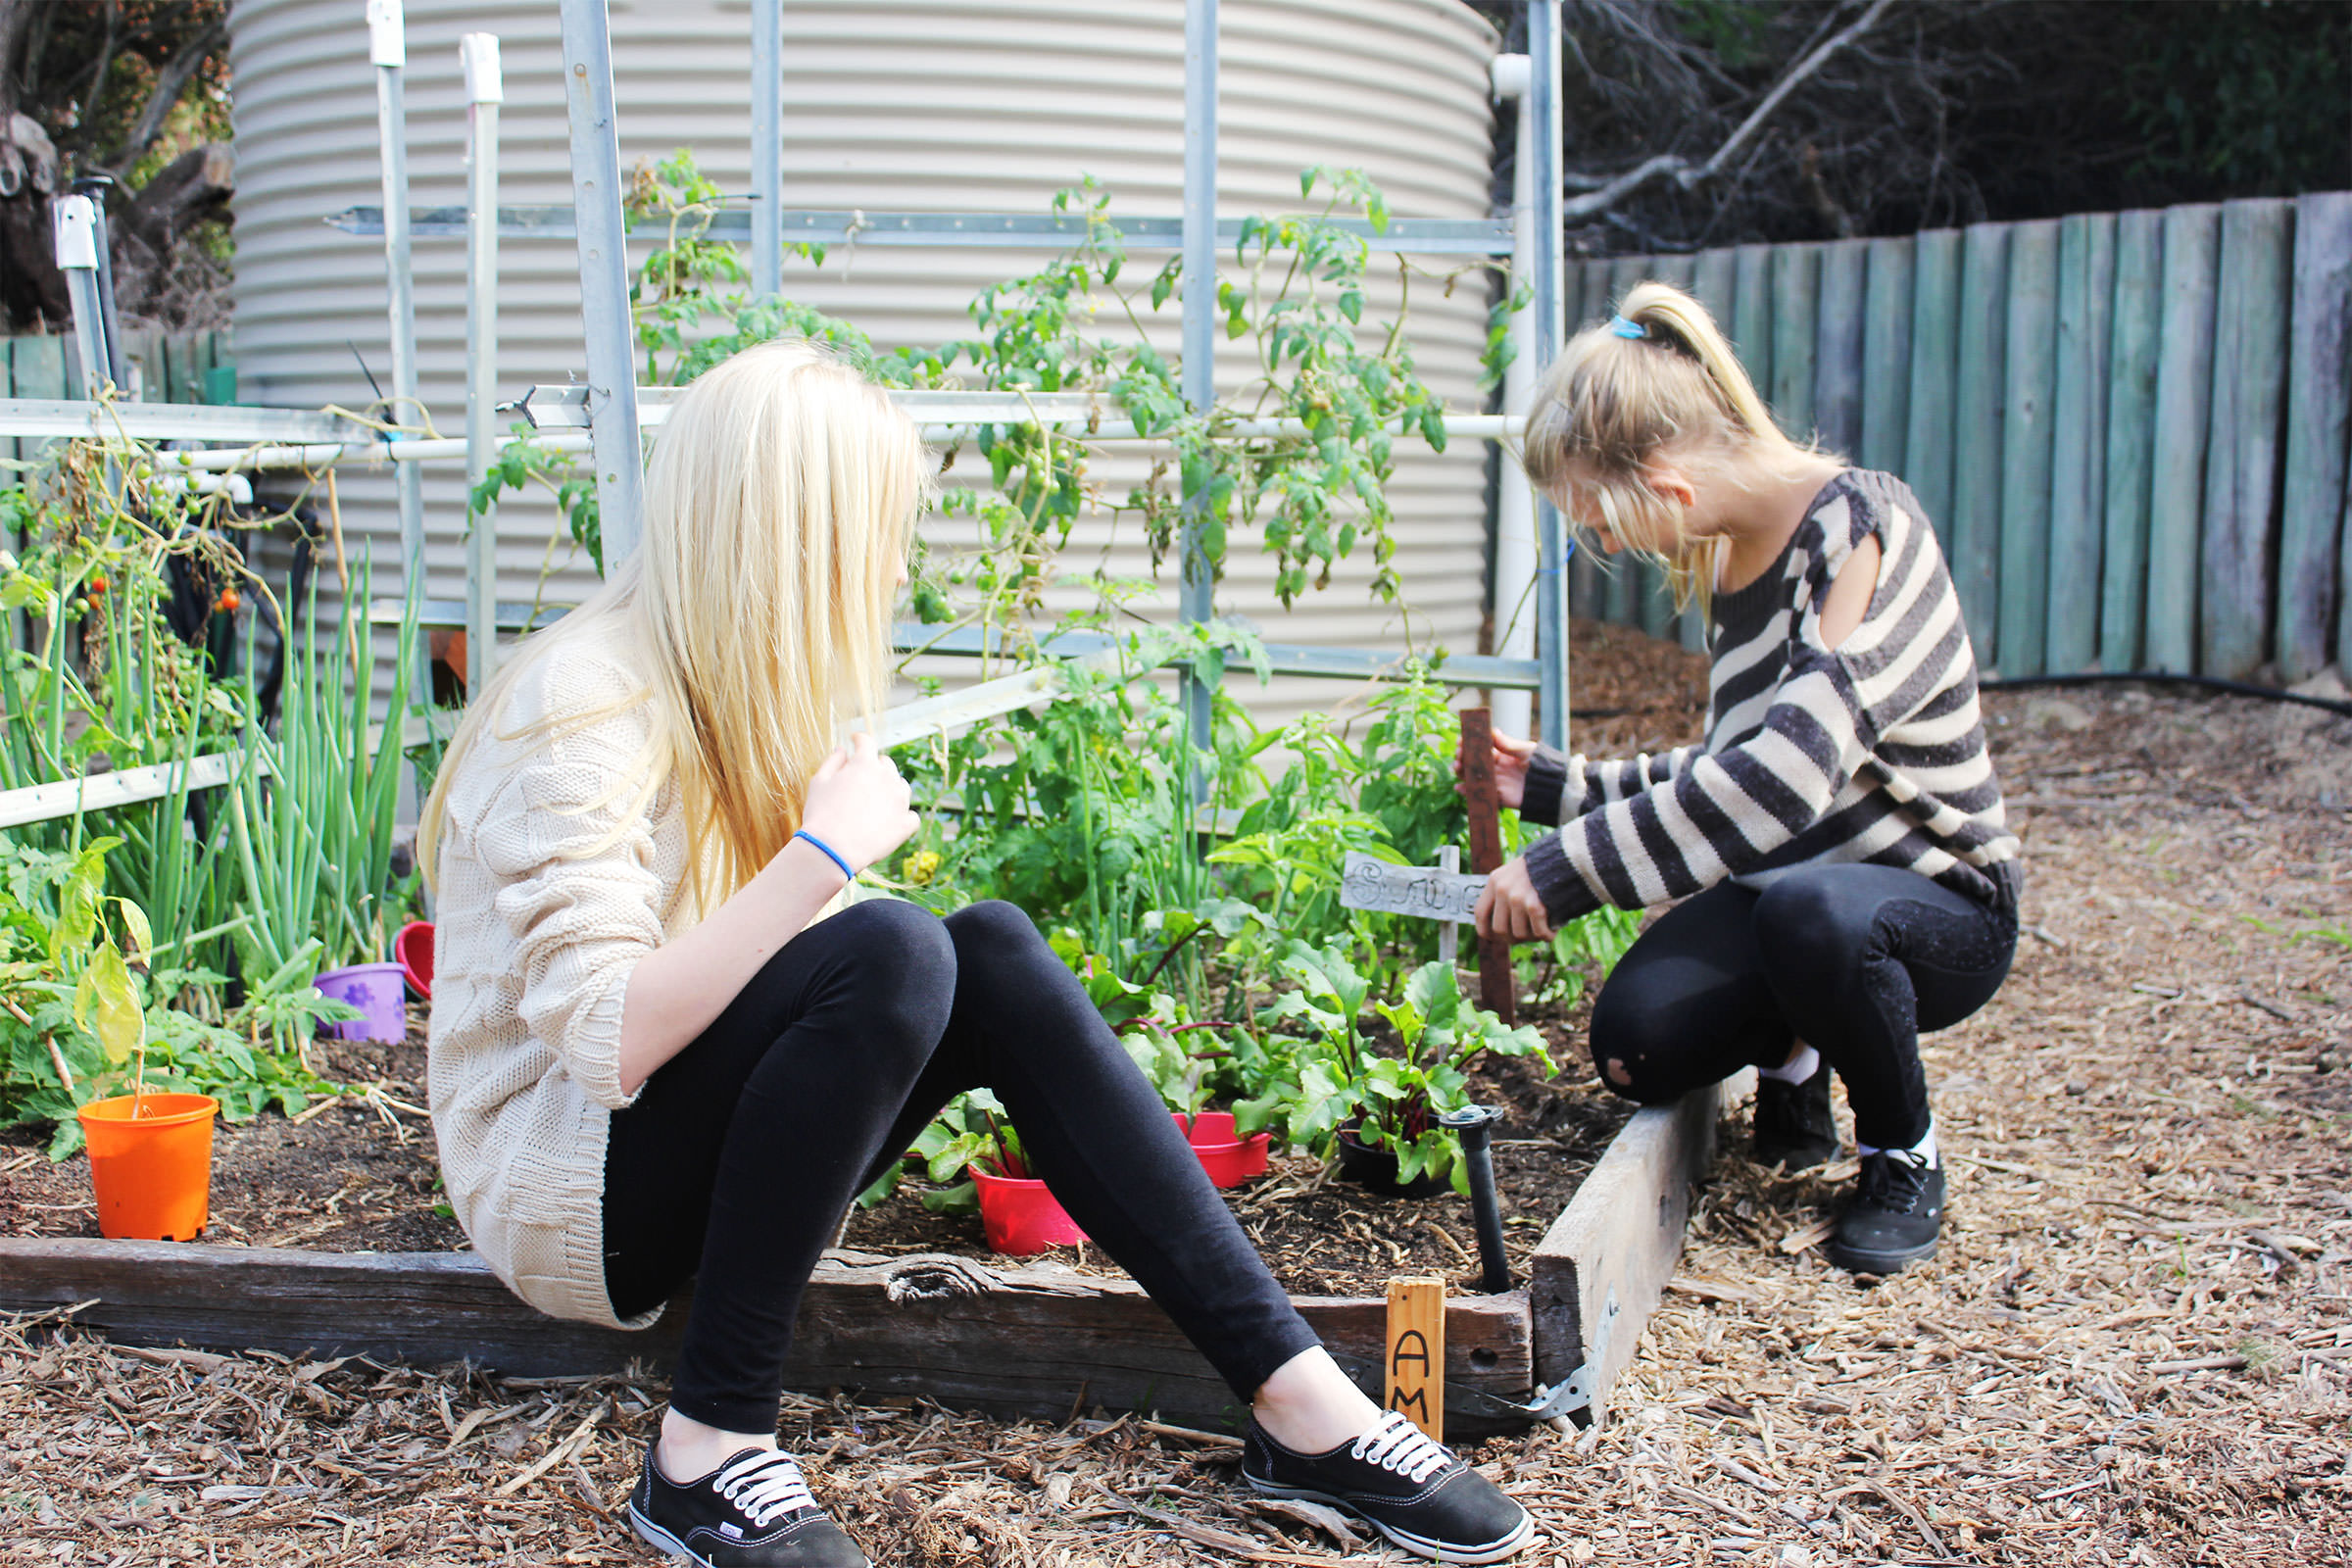 Two adolescents gardening